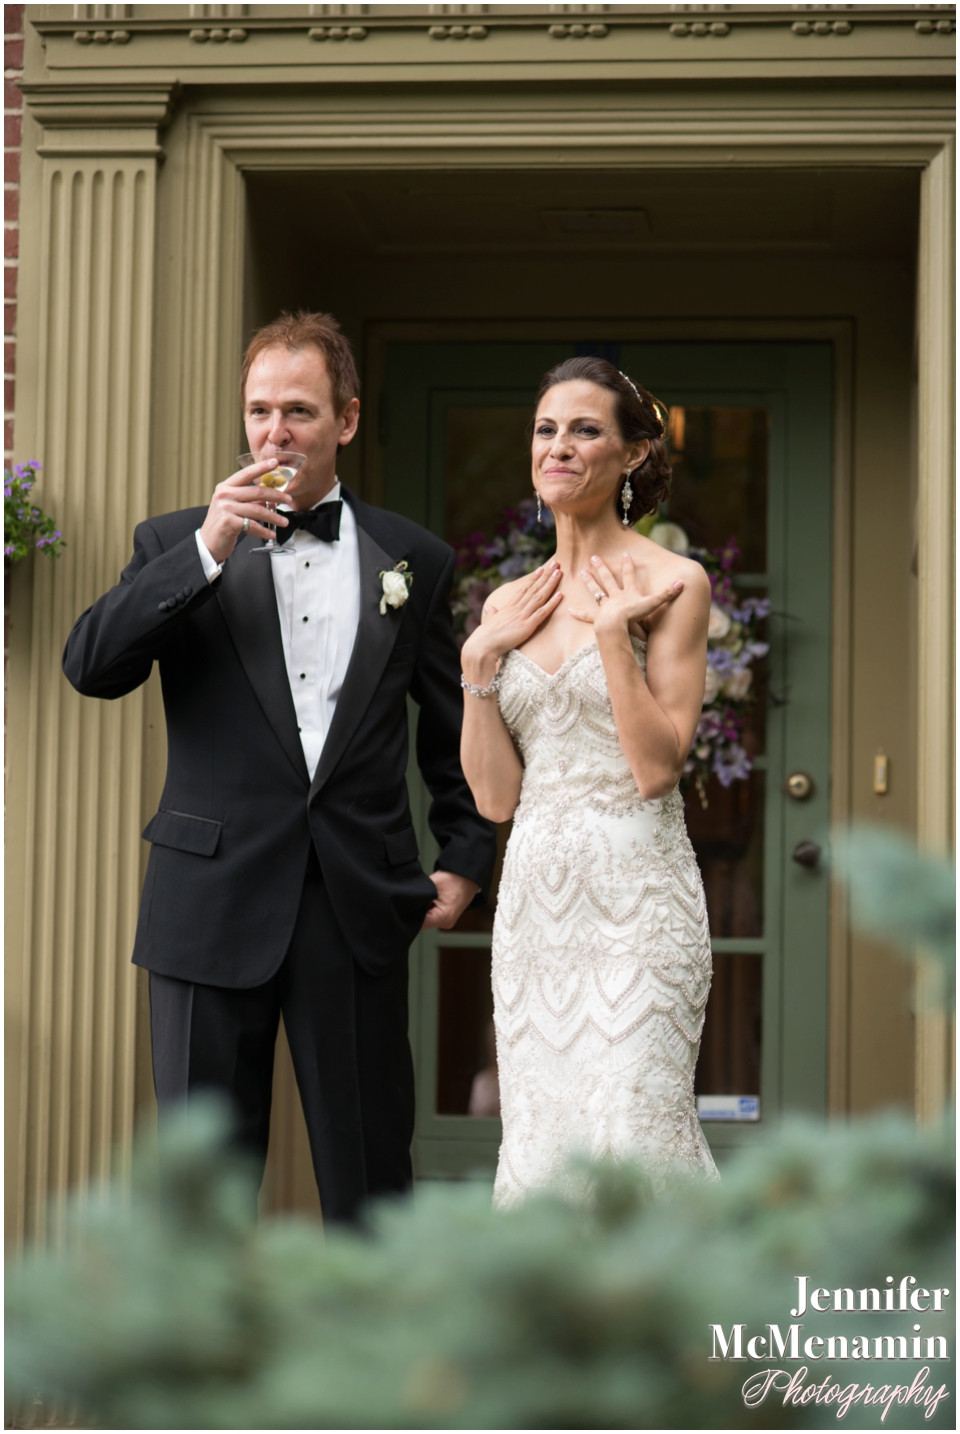 052-CoughlinPomper_02759-0557_JenniferMcMenaminPhotography_Private-Residence-Roland-Park_Baltimore-Wedding-Photography